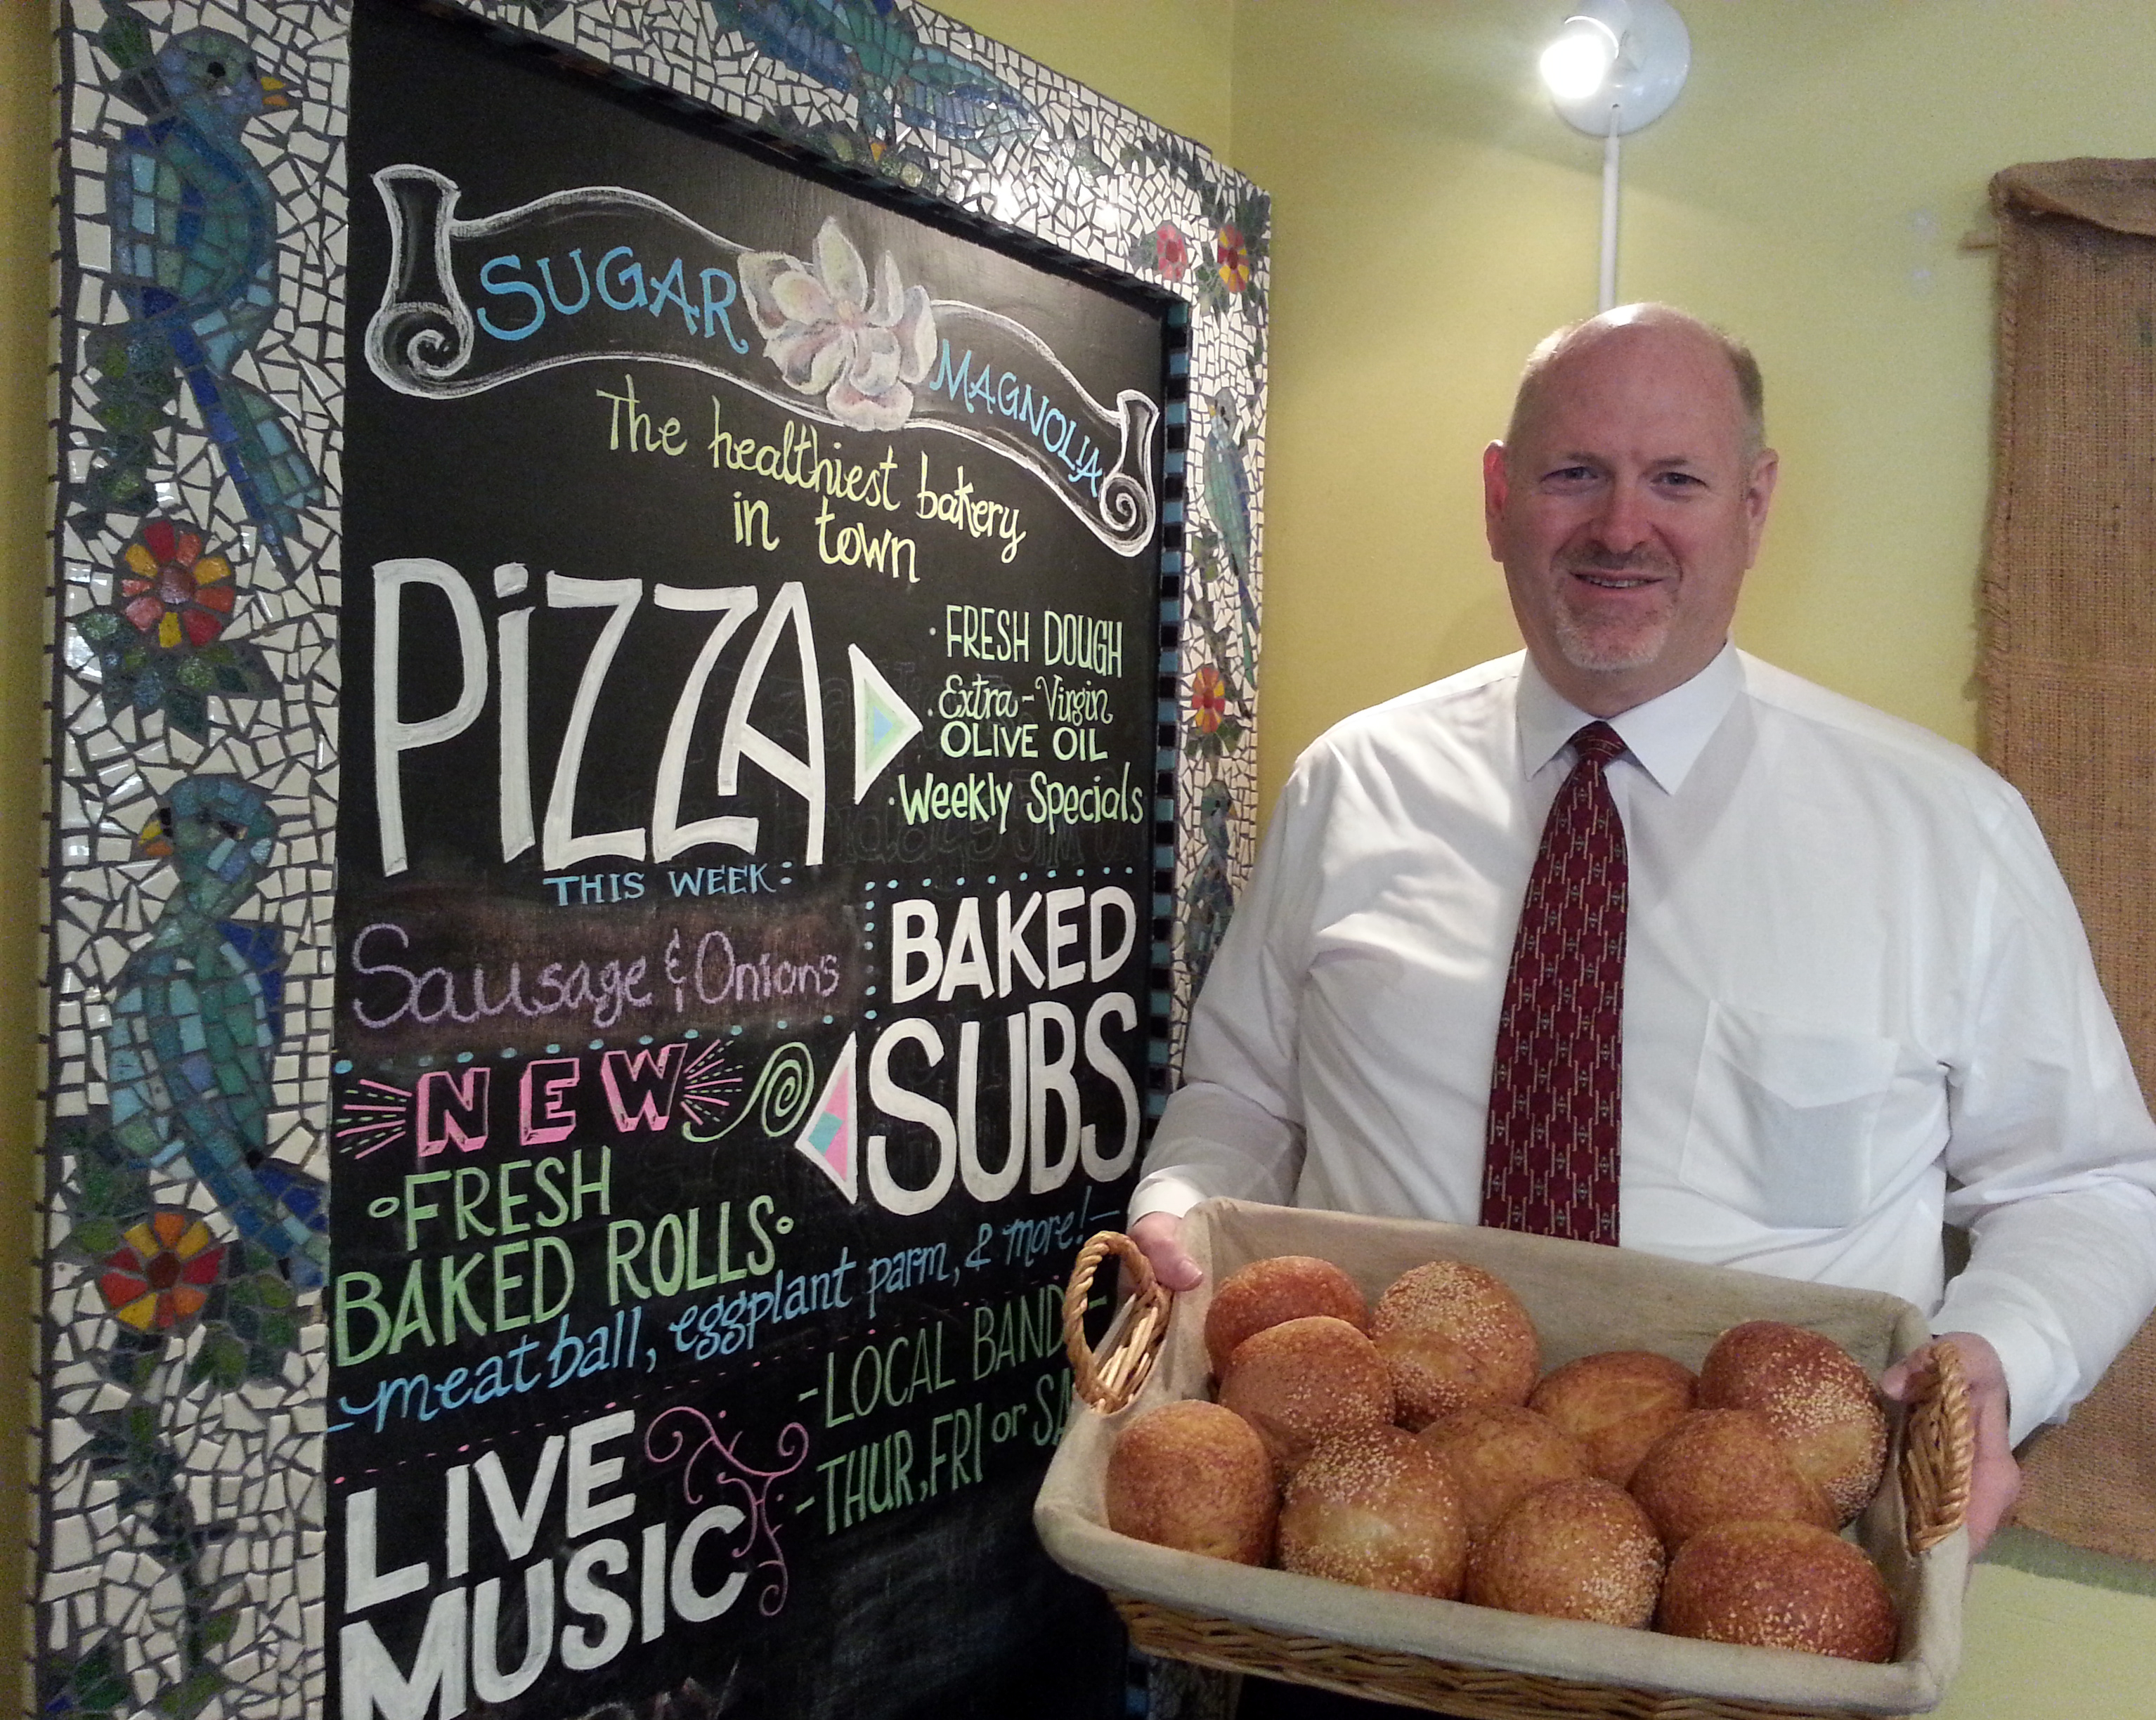 Local Spotlight: Barry Turner of Sugar Magnolia Bakery & Cafe